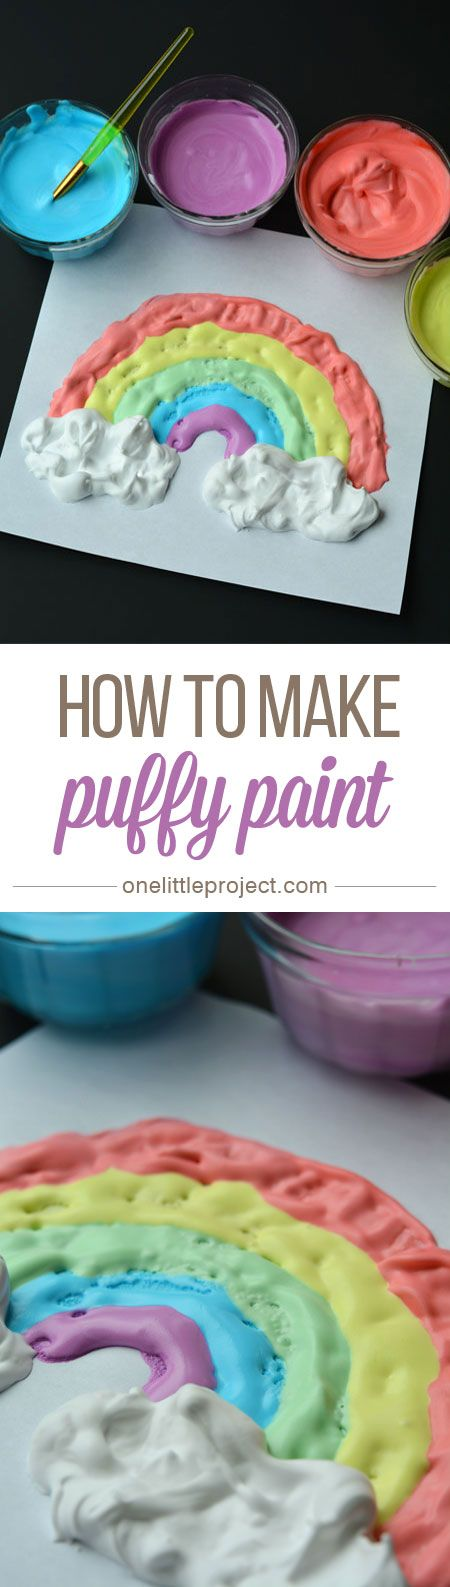 Did you know you can make puffy paint?! Your kids will LOVE this fun and creative DIY!